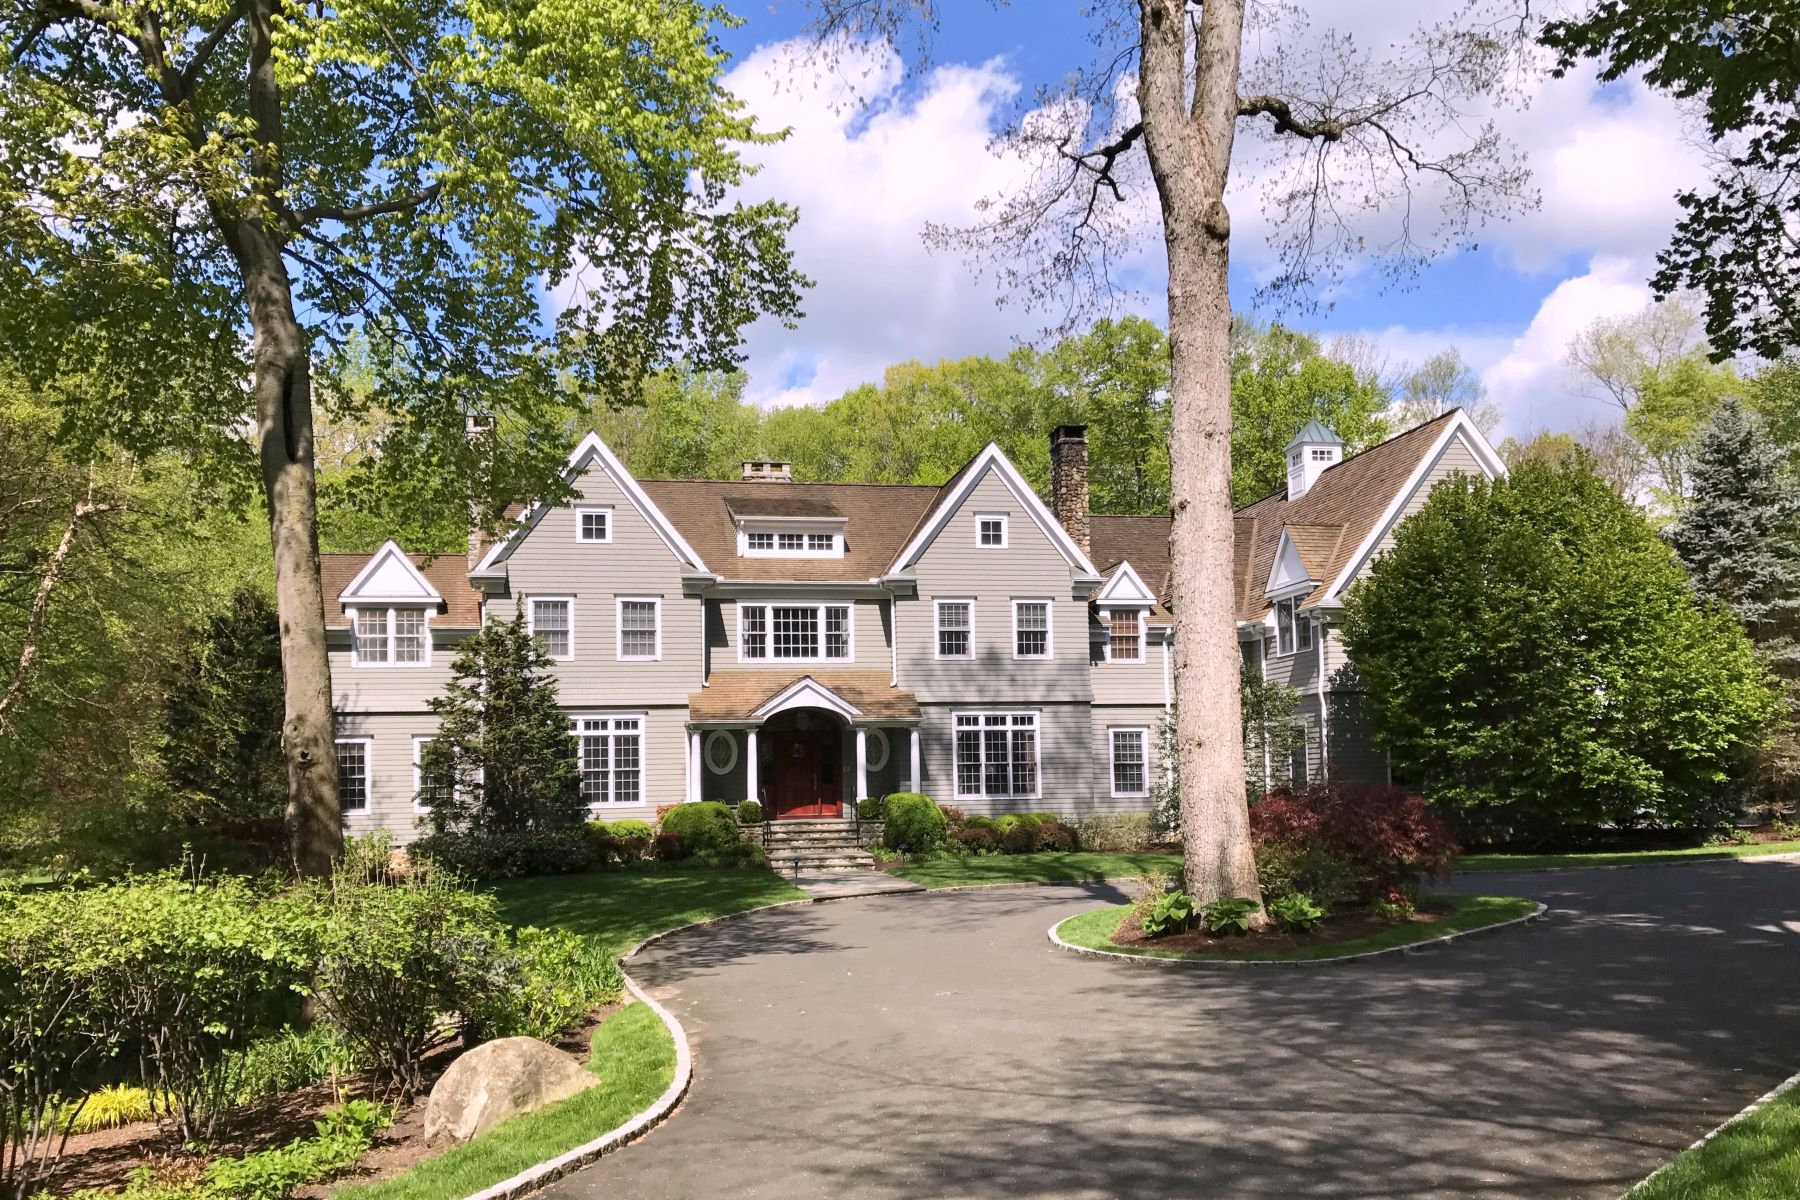 Single Family Home for Sale at 53 Blueberry Lane Darien, Connecticut, 06820 United States